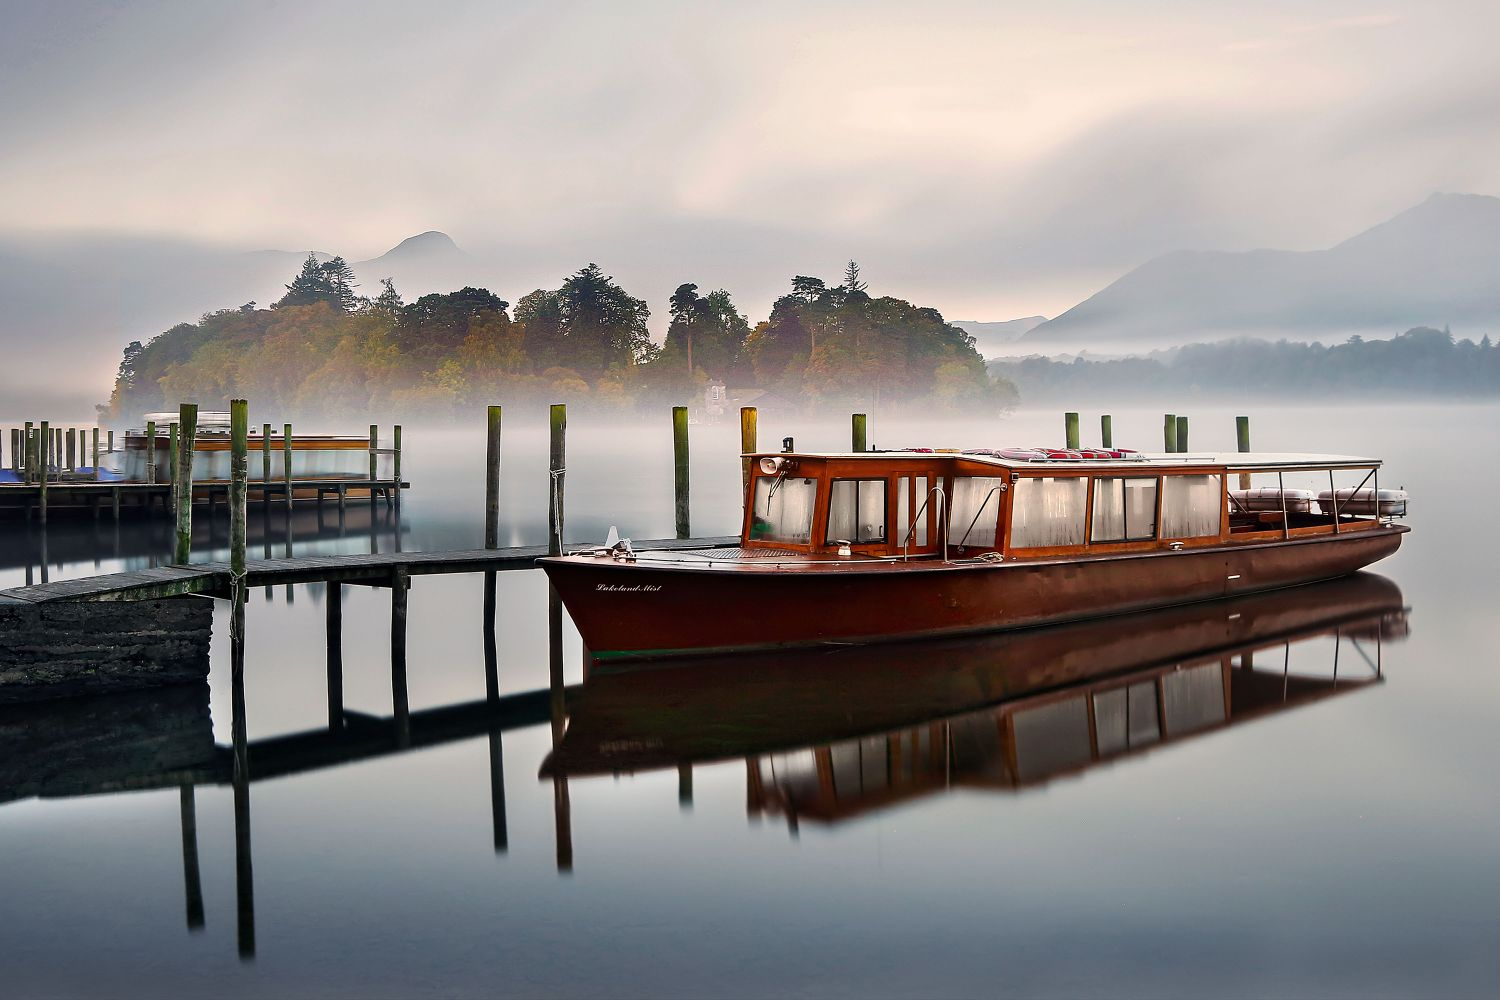 Autumnal Mists at Derwentwater by Martin Lawrence